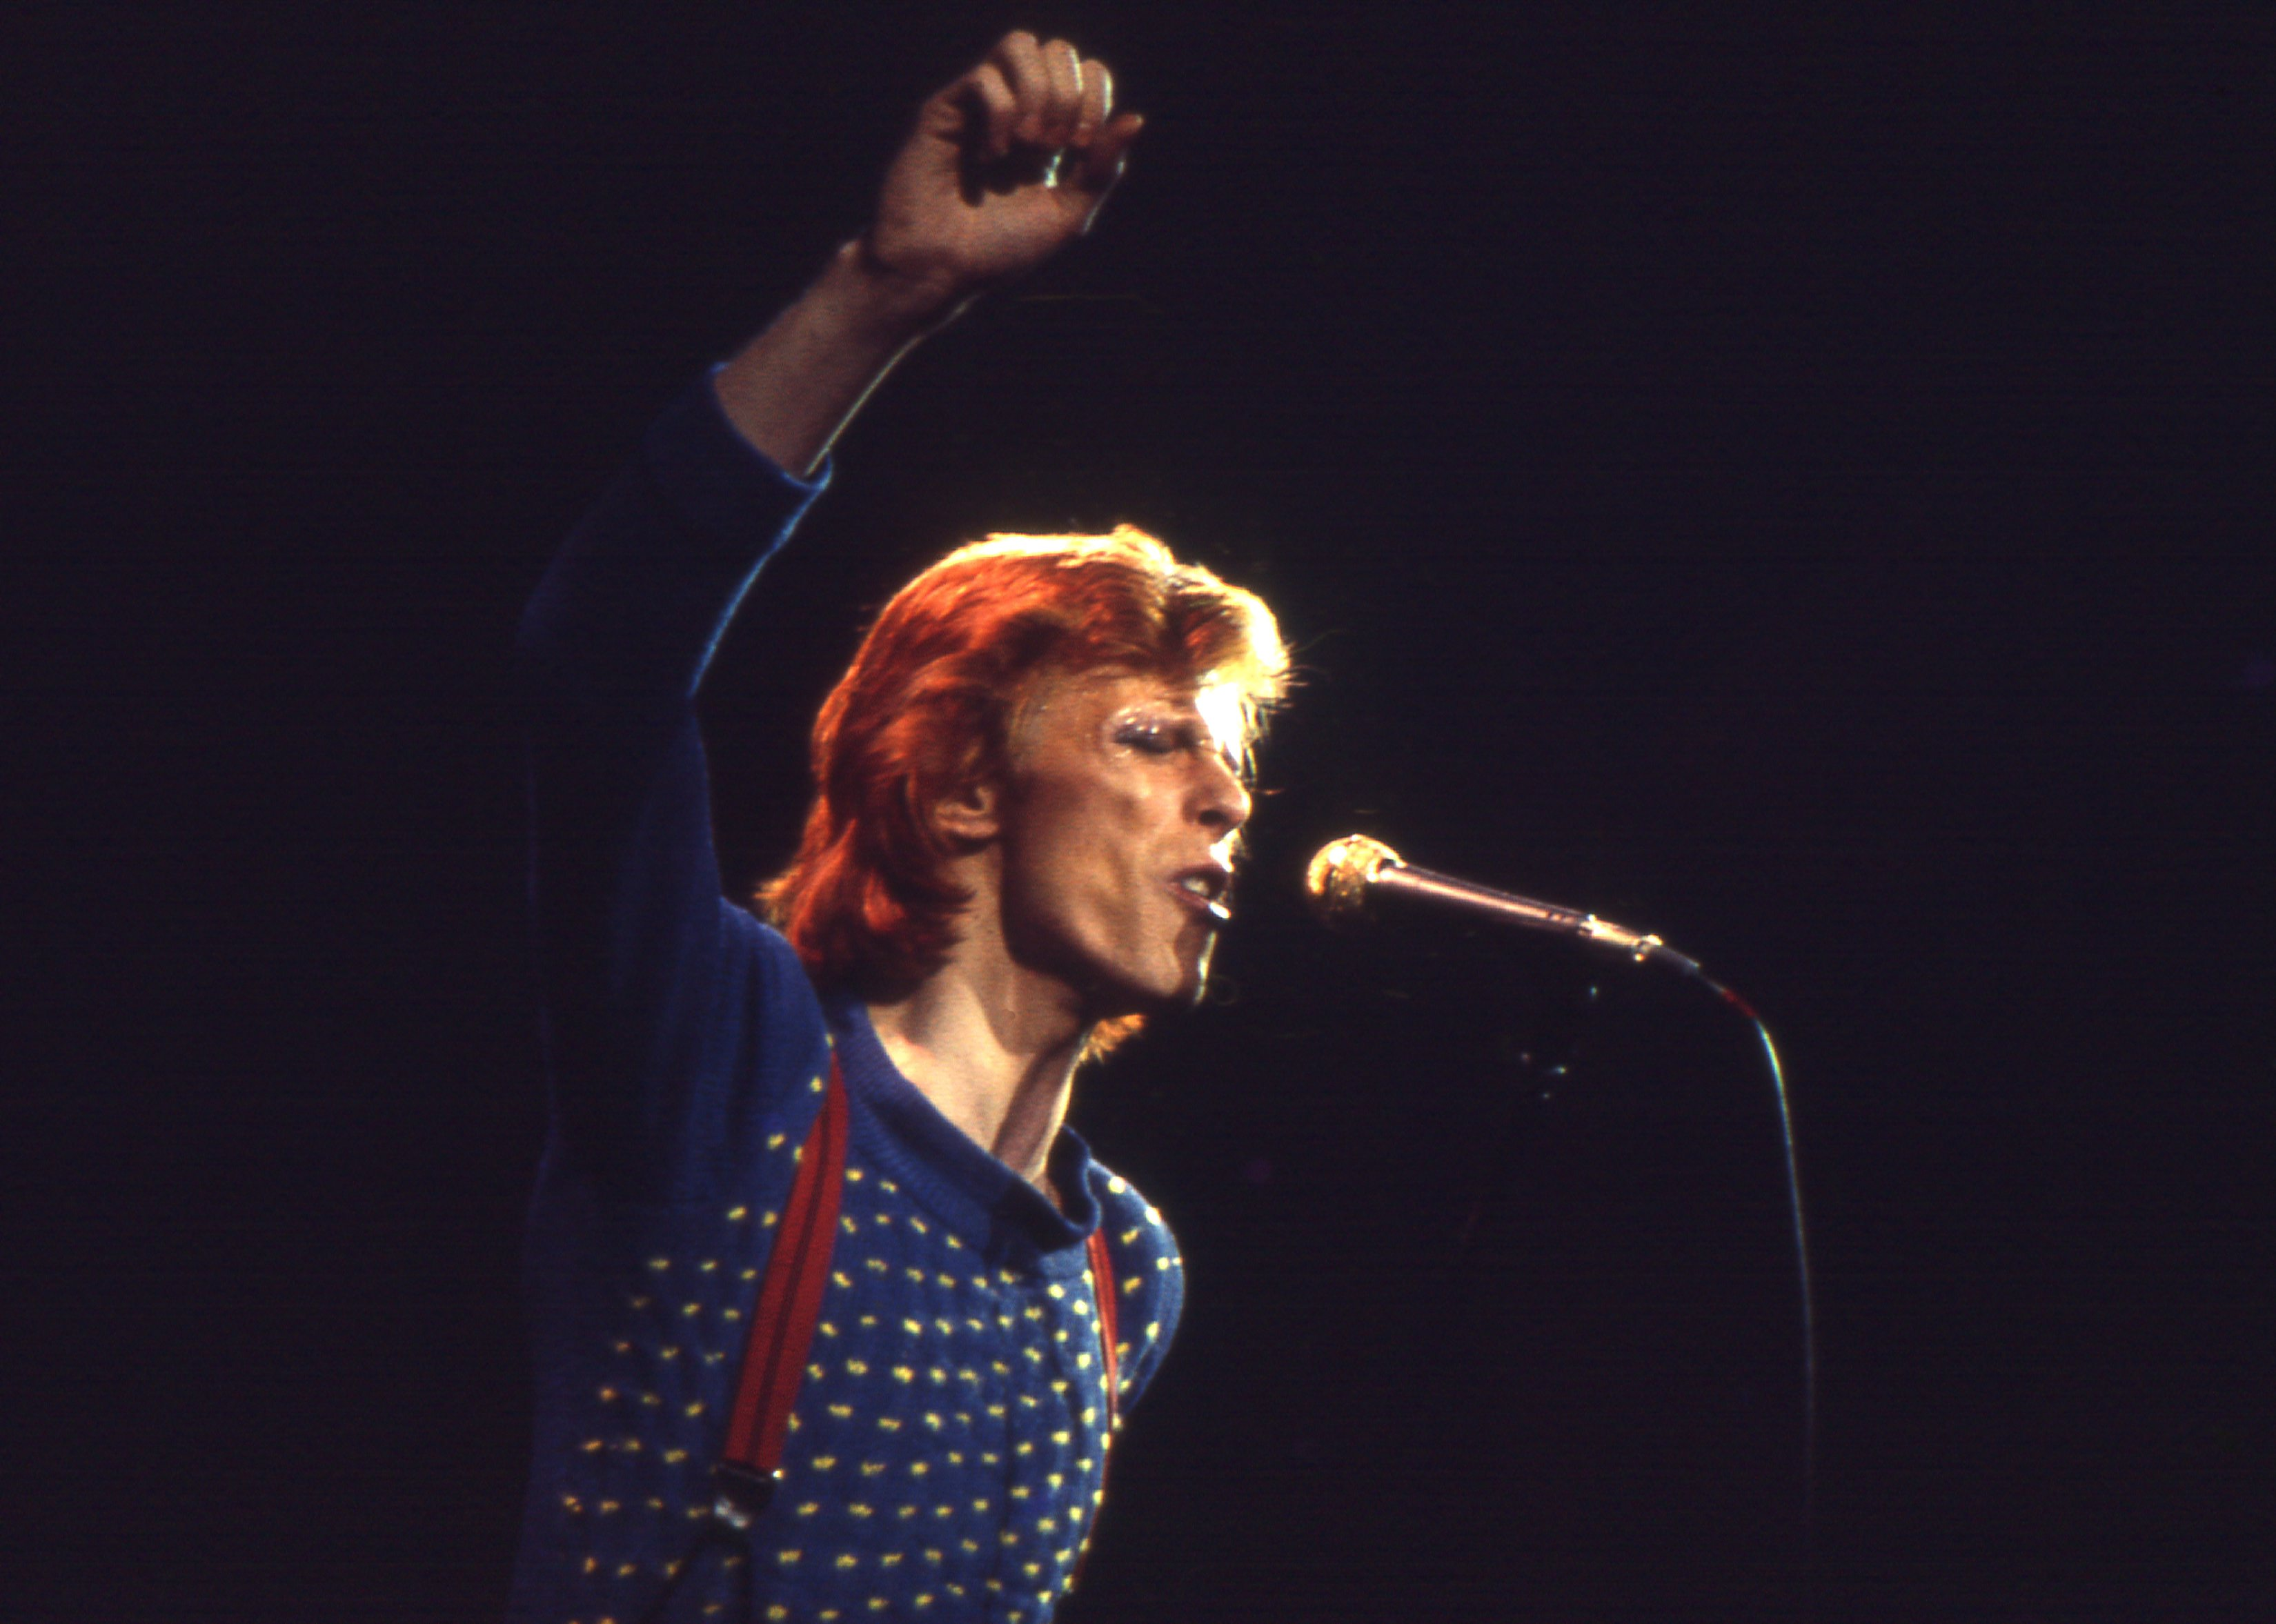 David Bowie performs in Nashville on June 29, 1974 during his Diamond Dogs tour. Photo by: Beth Gwinn/Getty Images